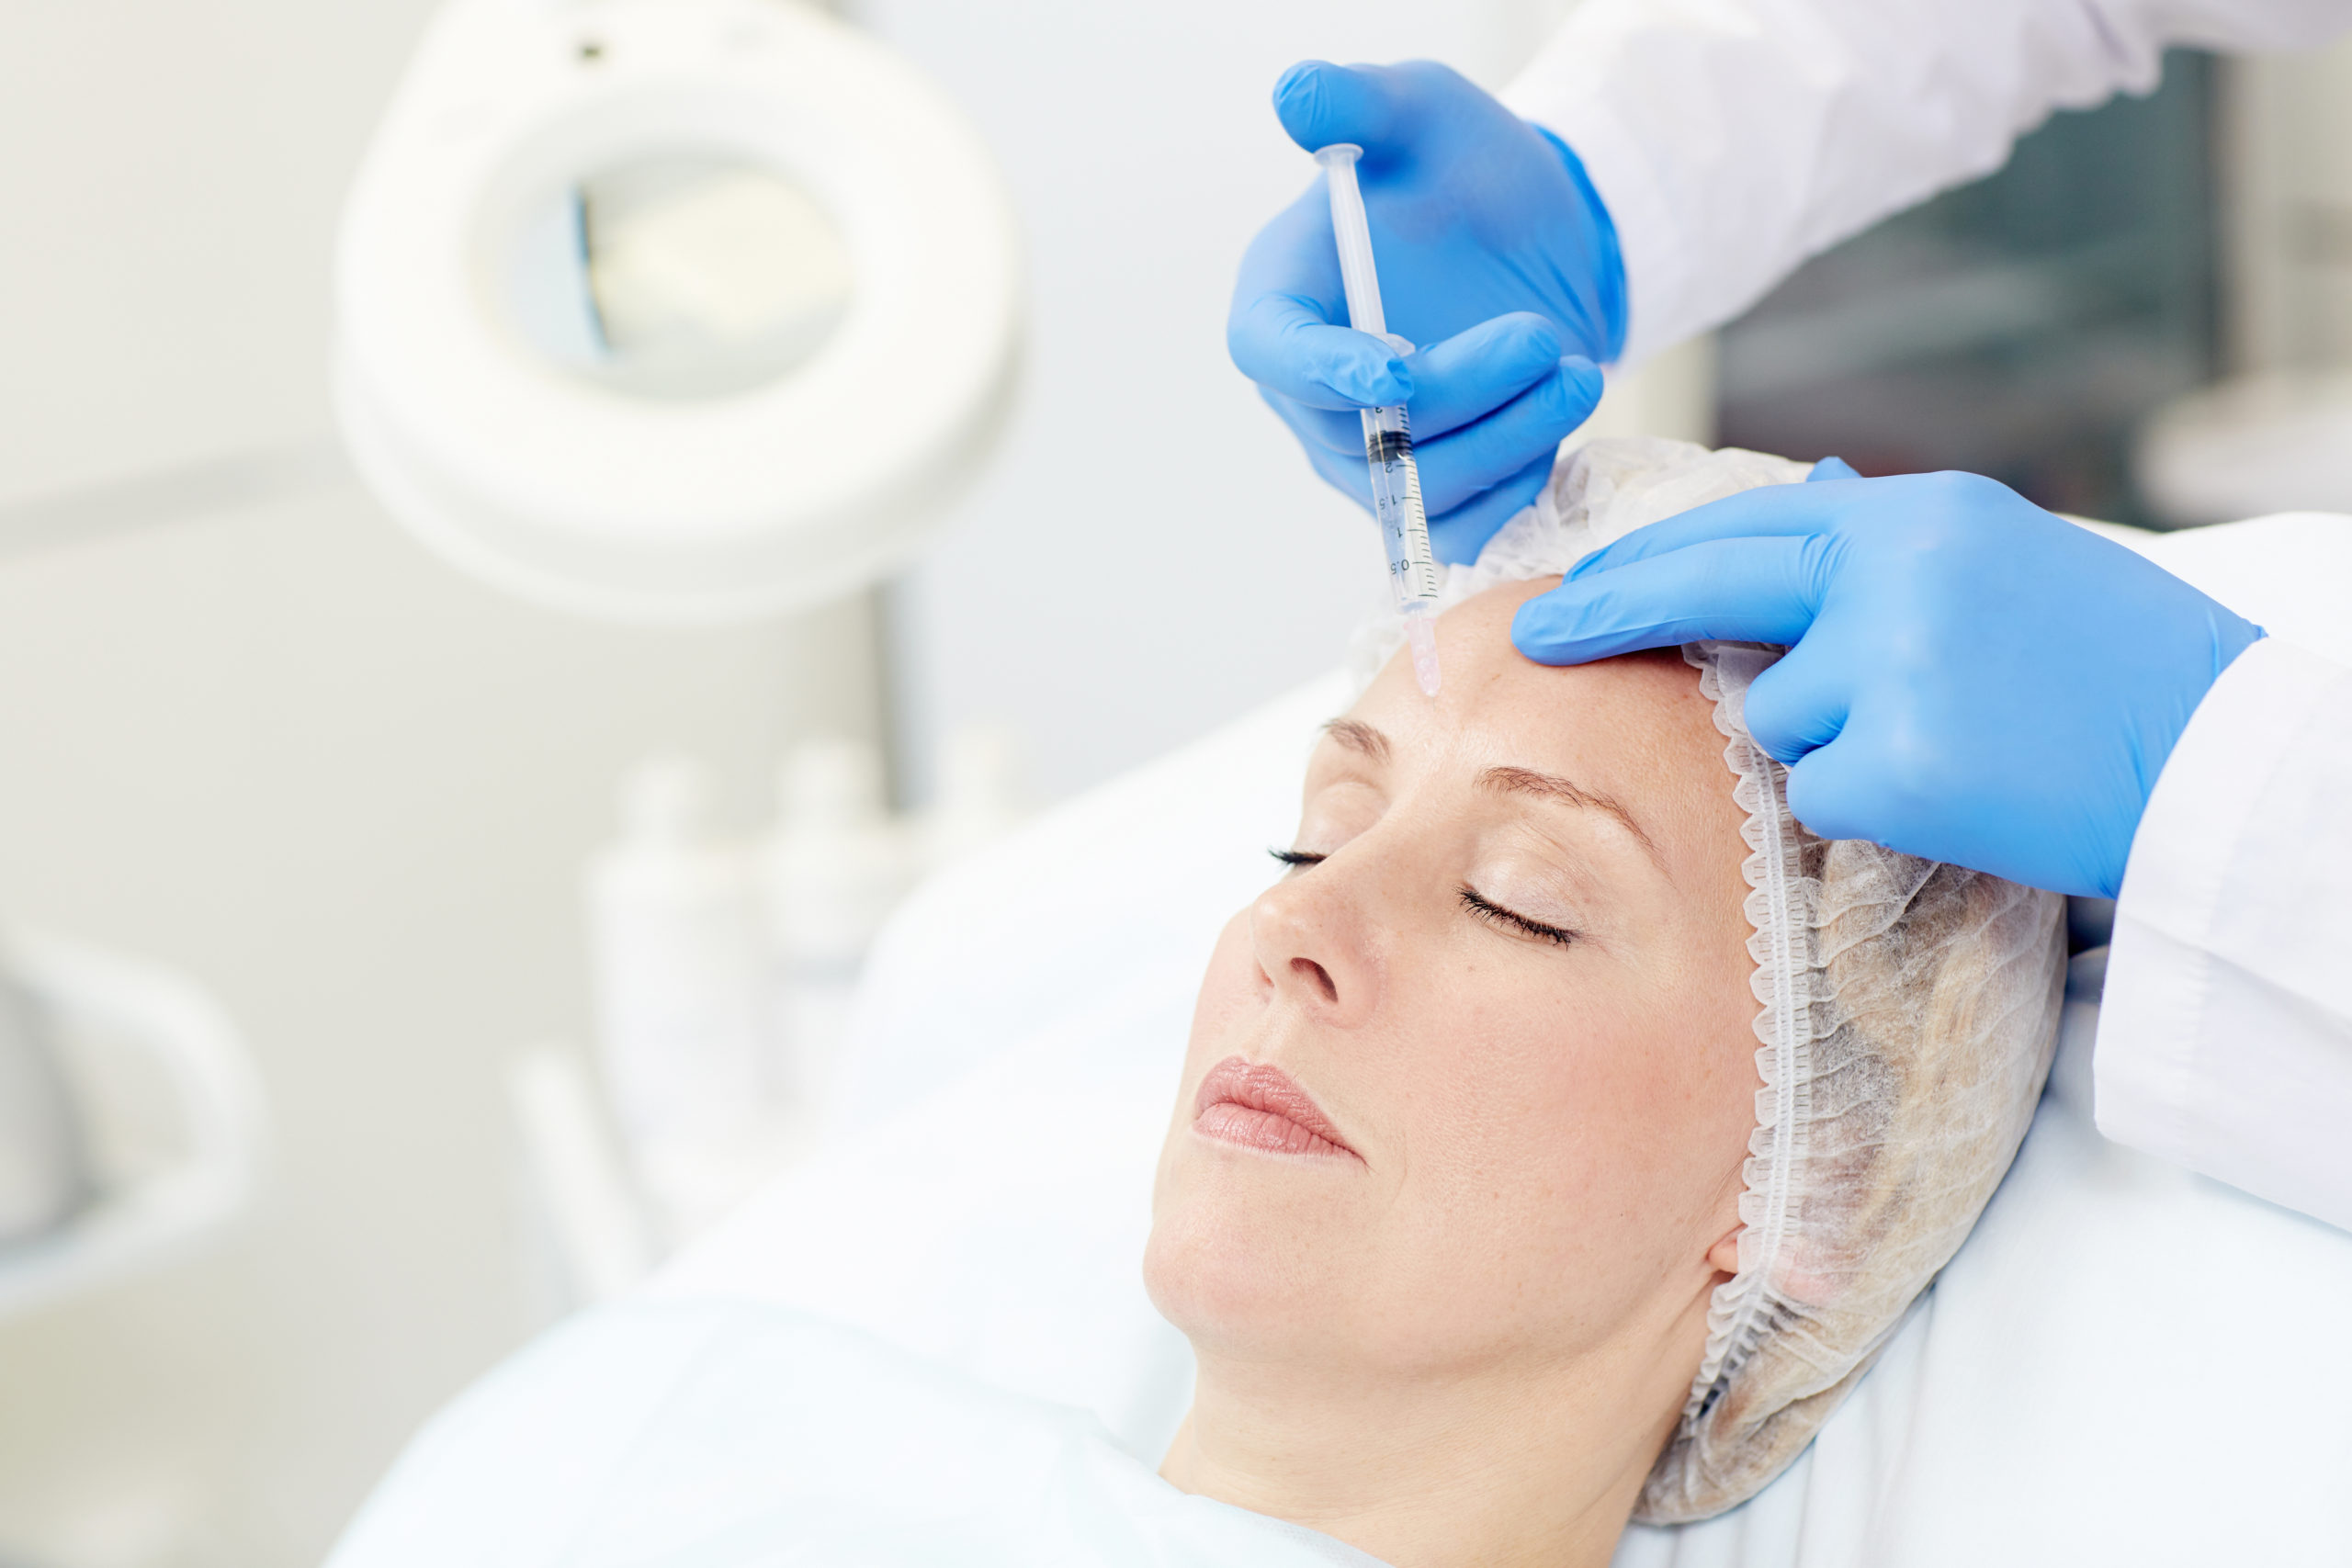 signs you need anti-wrinkle injections or botox